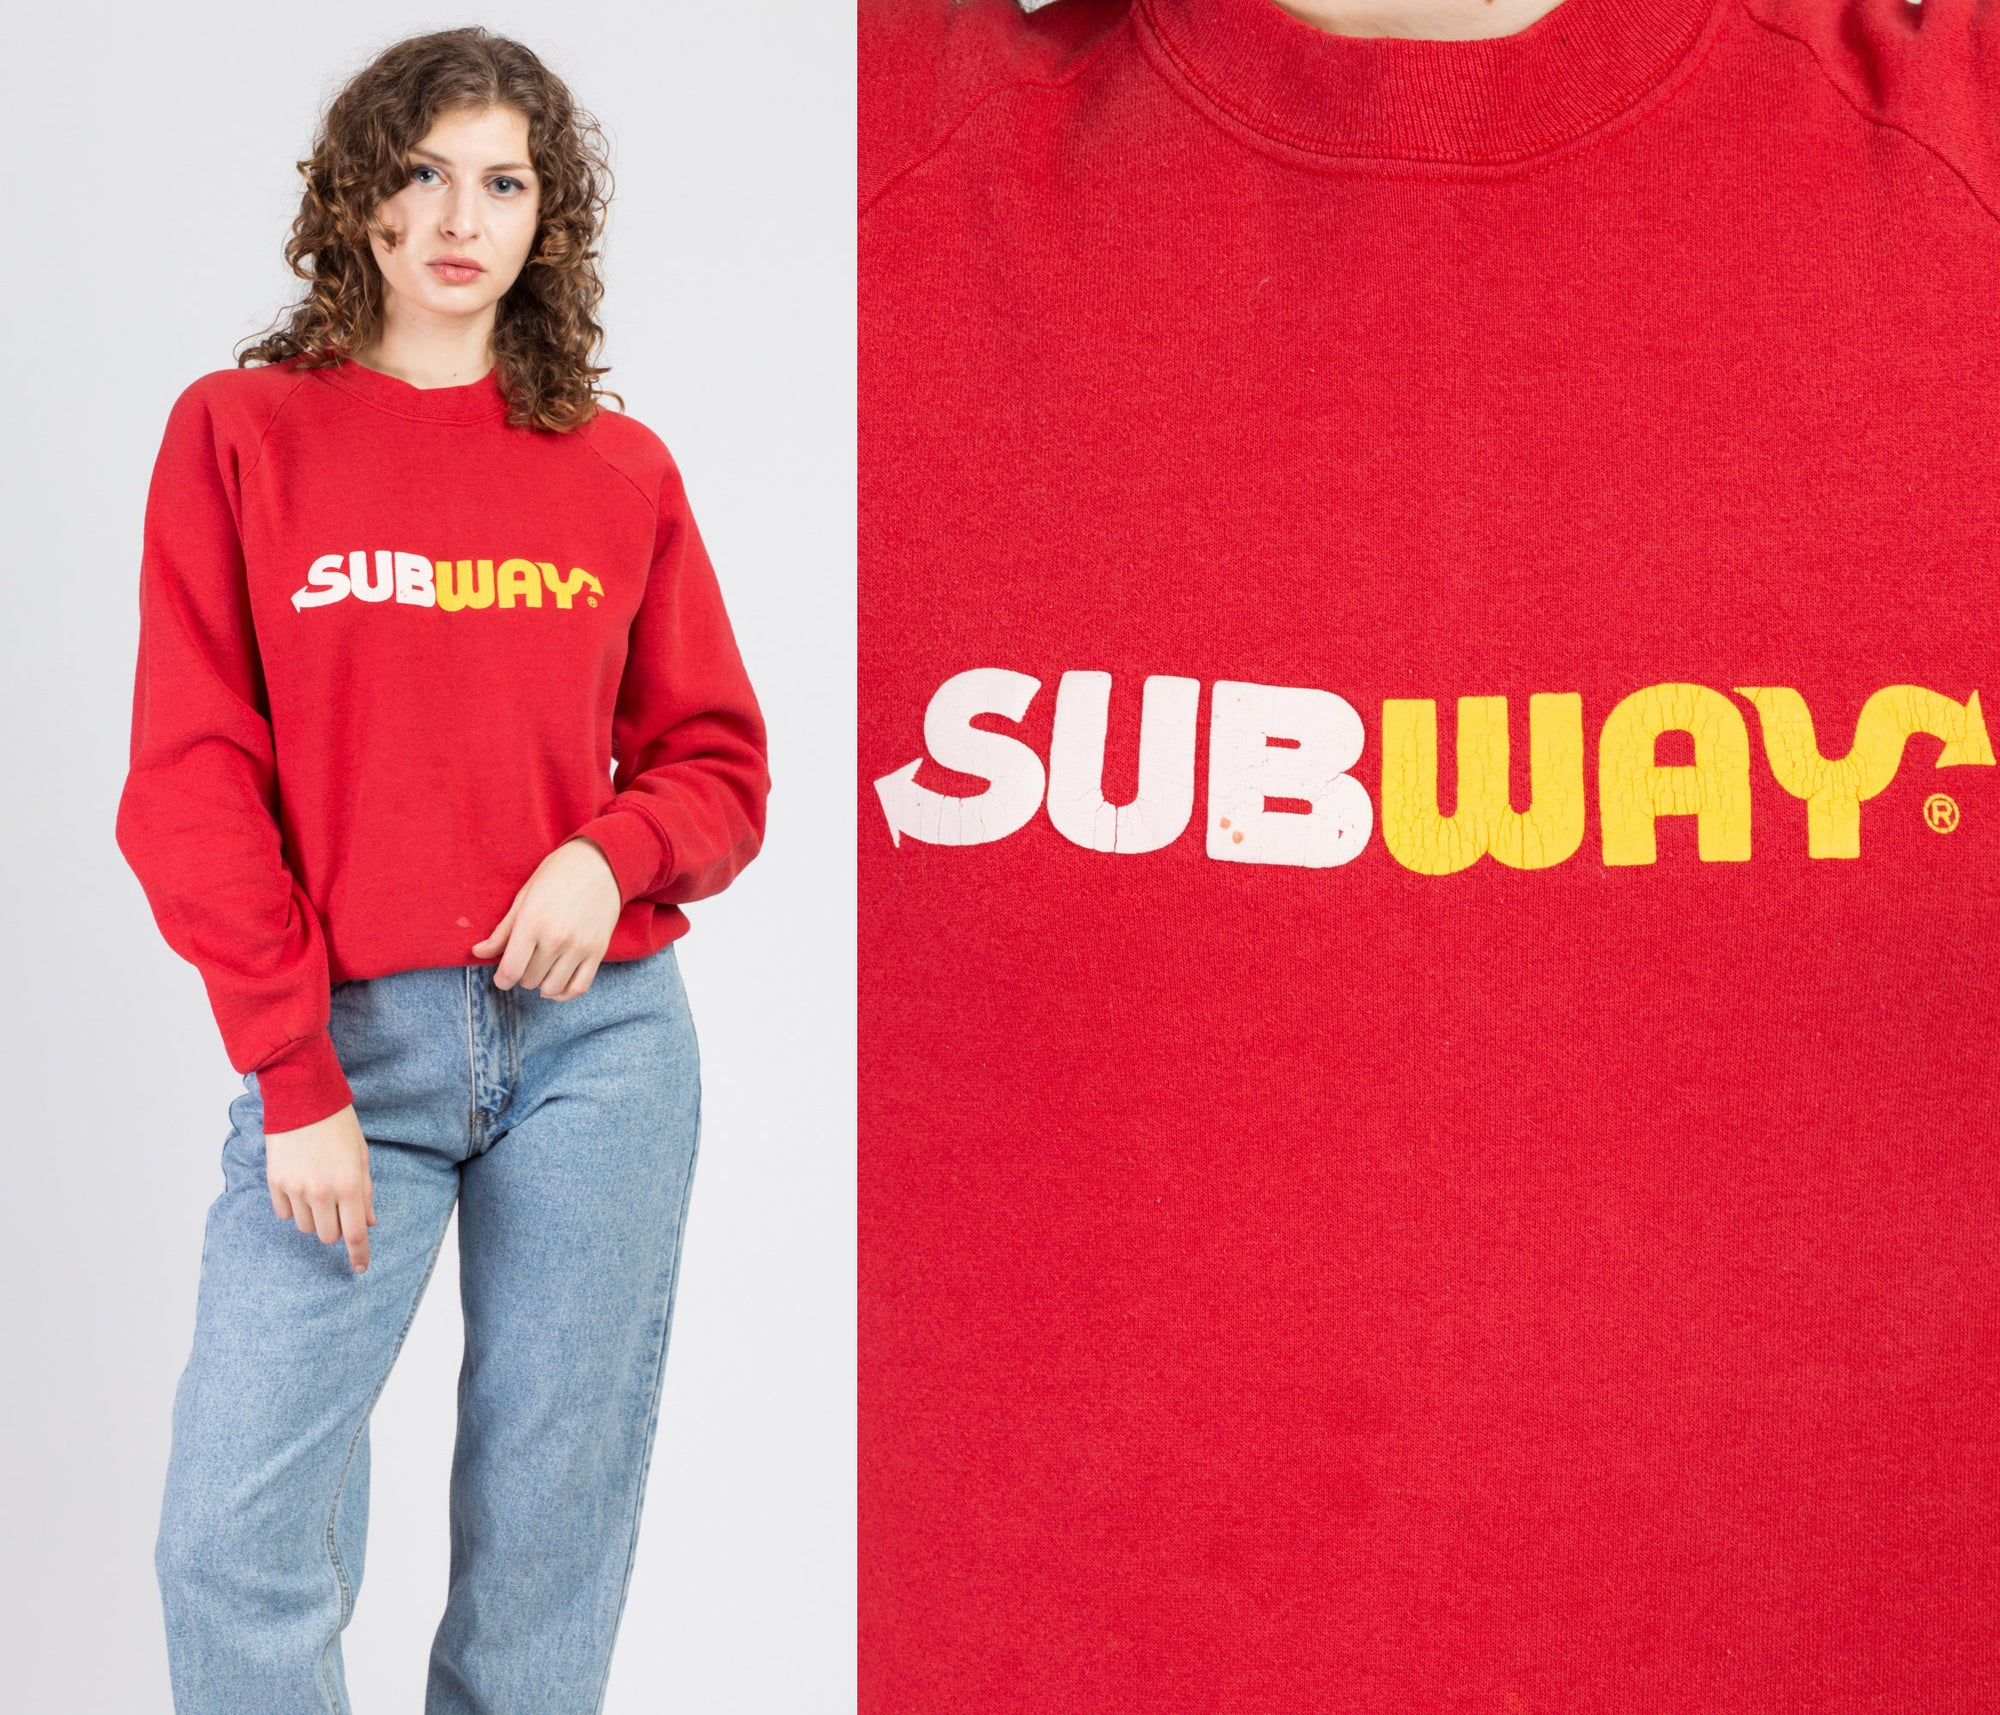 80s Subway Sweatshirt - Men's Medium